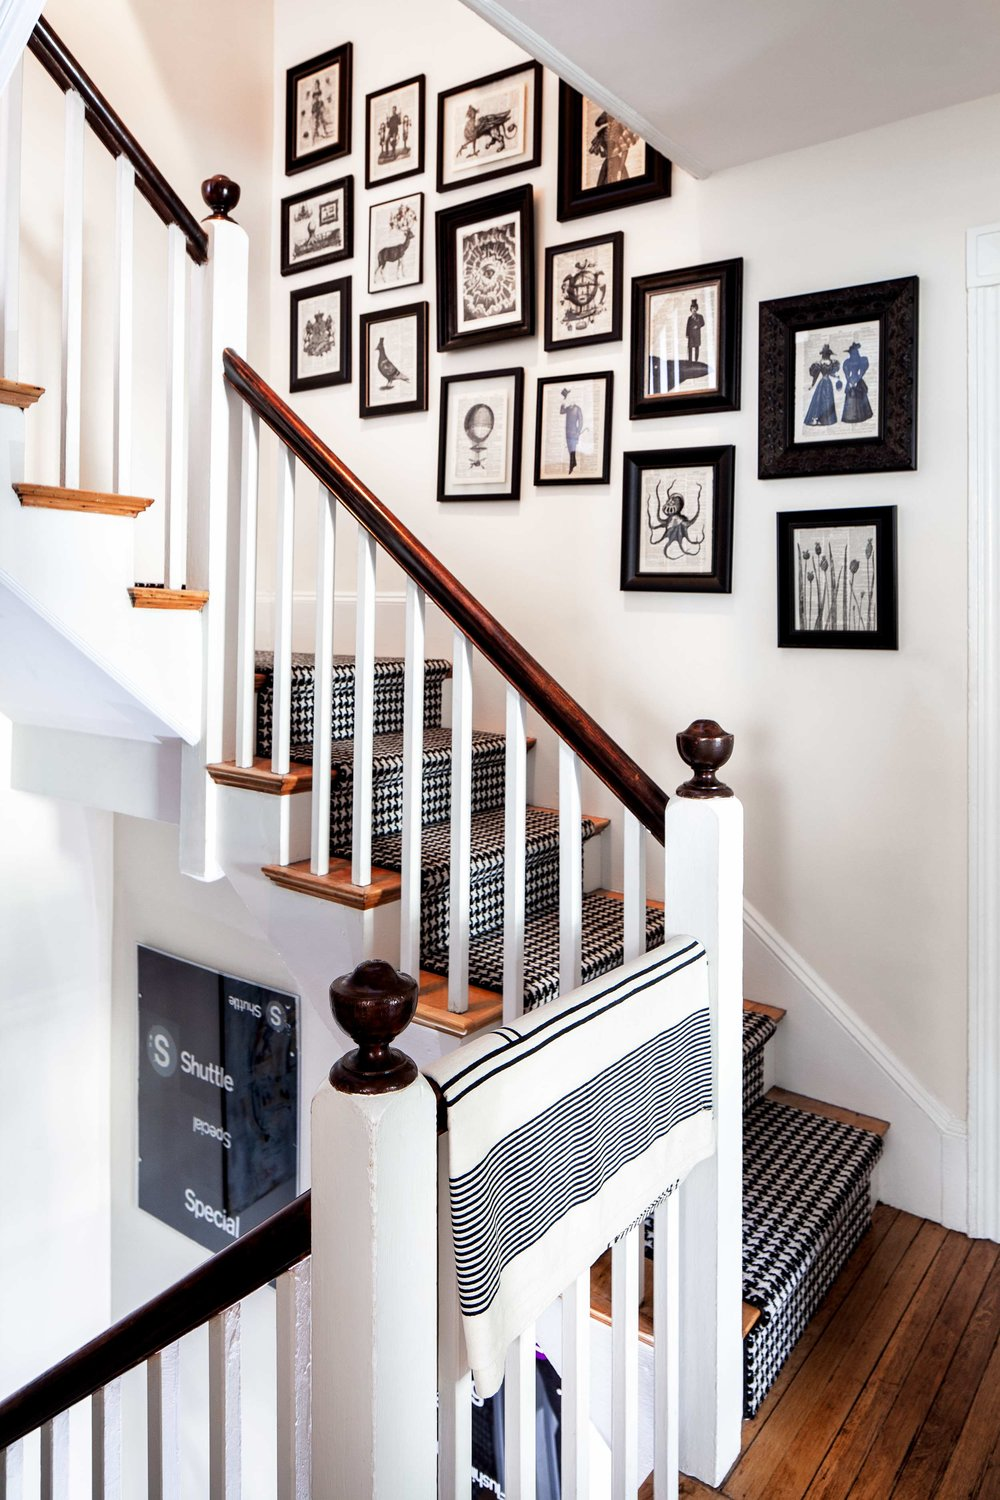 Montanaro and Saiber found frames in antique stores for the hand-stamped collages made from vintage dictionary pages that line the stair well between the second and third floors.